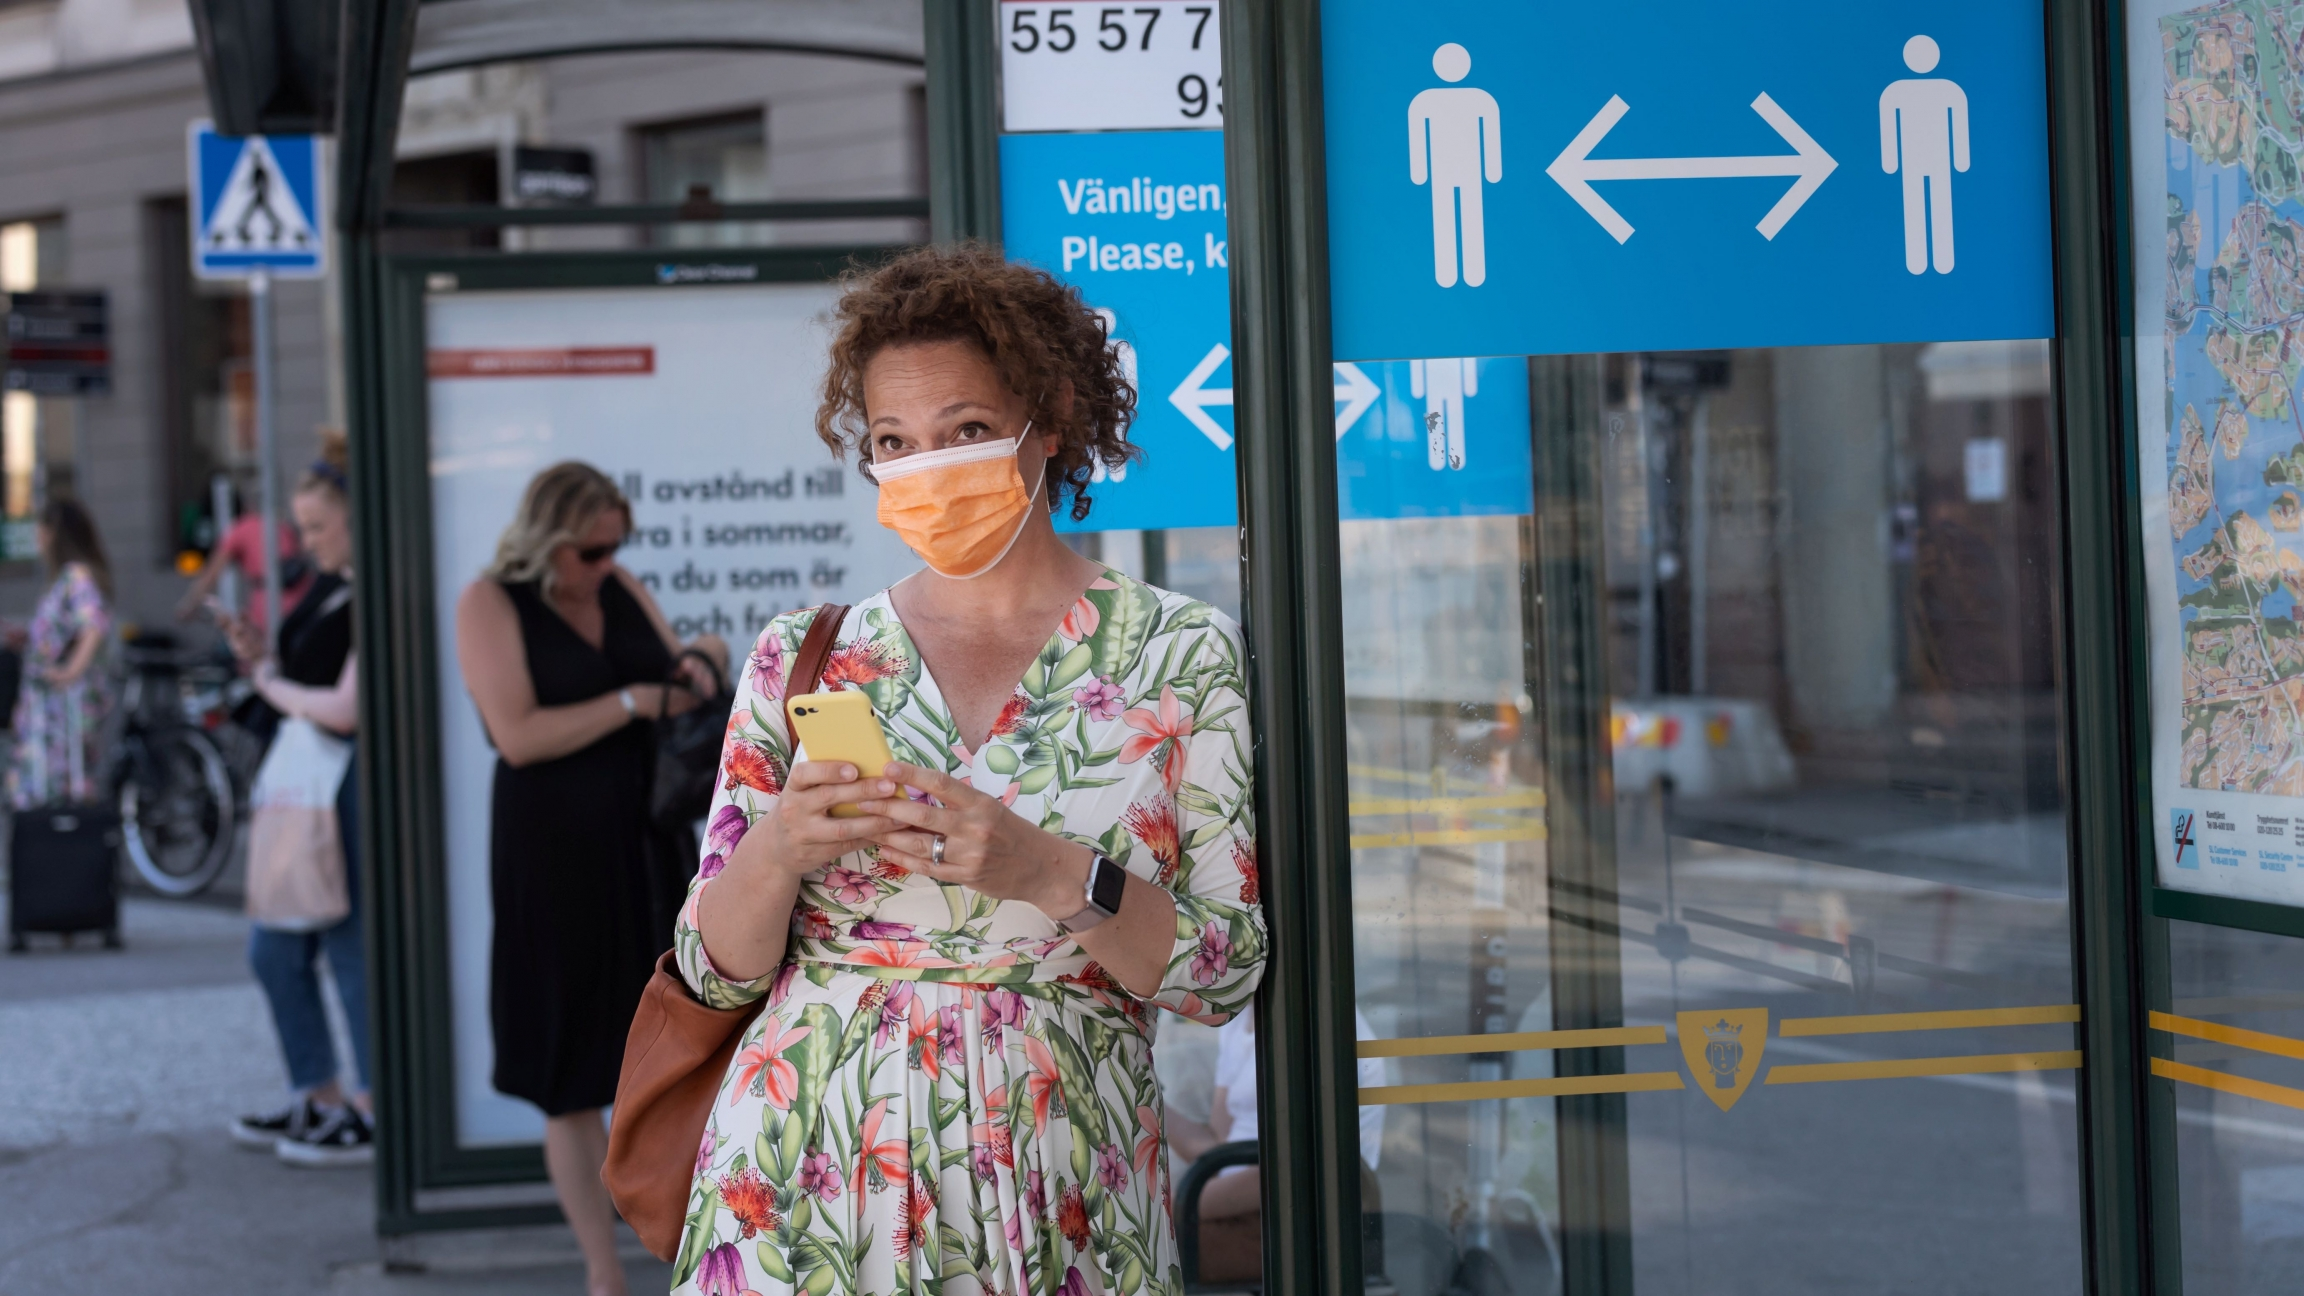 A woman wearing a face mask is seen in a bus stop next to an information sign asking people to keep social distance due to the outbreak of the coronavirus disease (COVID-19), in Stockholm, Sweden, June 26, 2020.